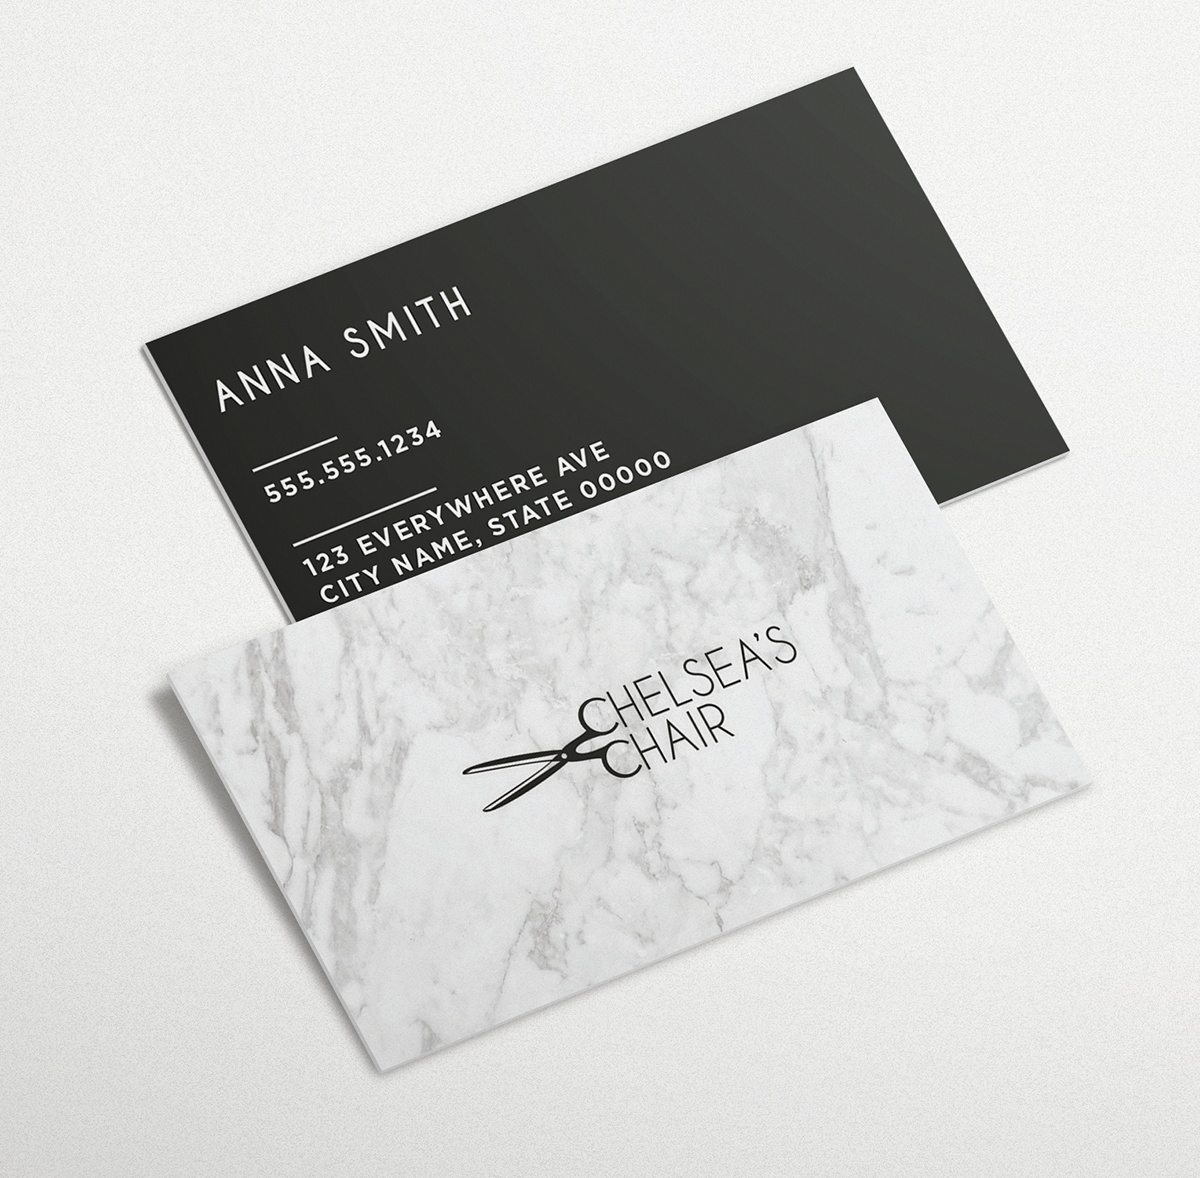 Chelsea's Chair Business Cards